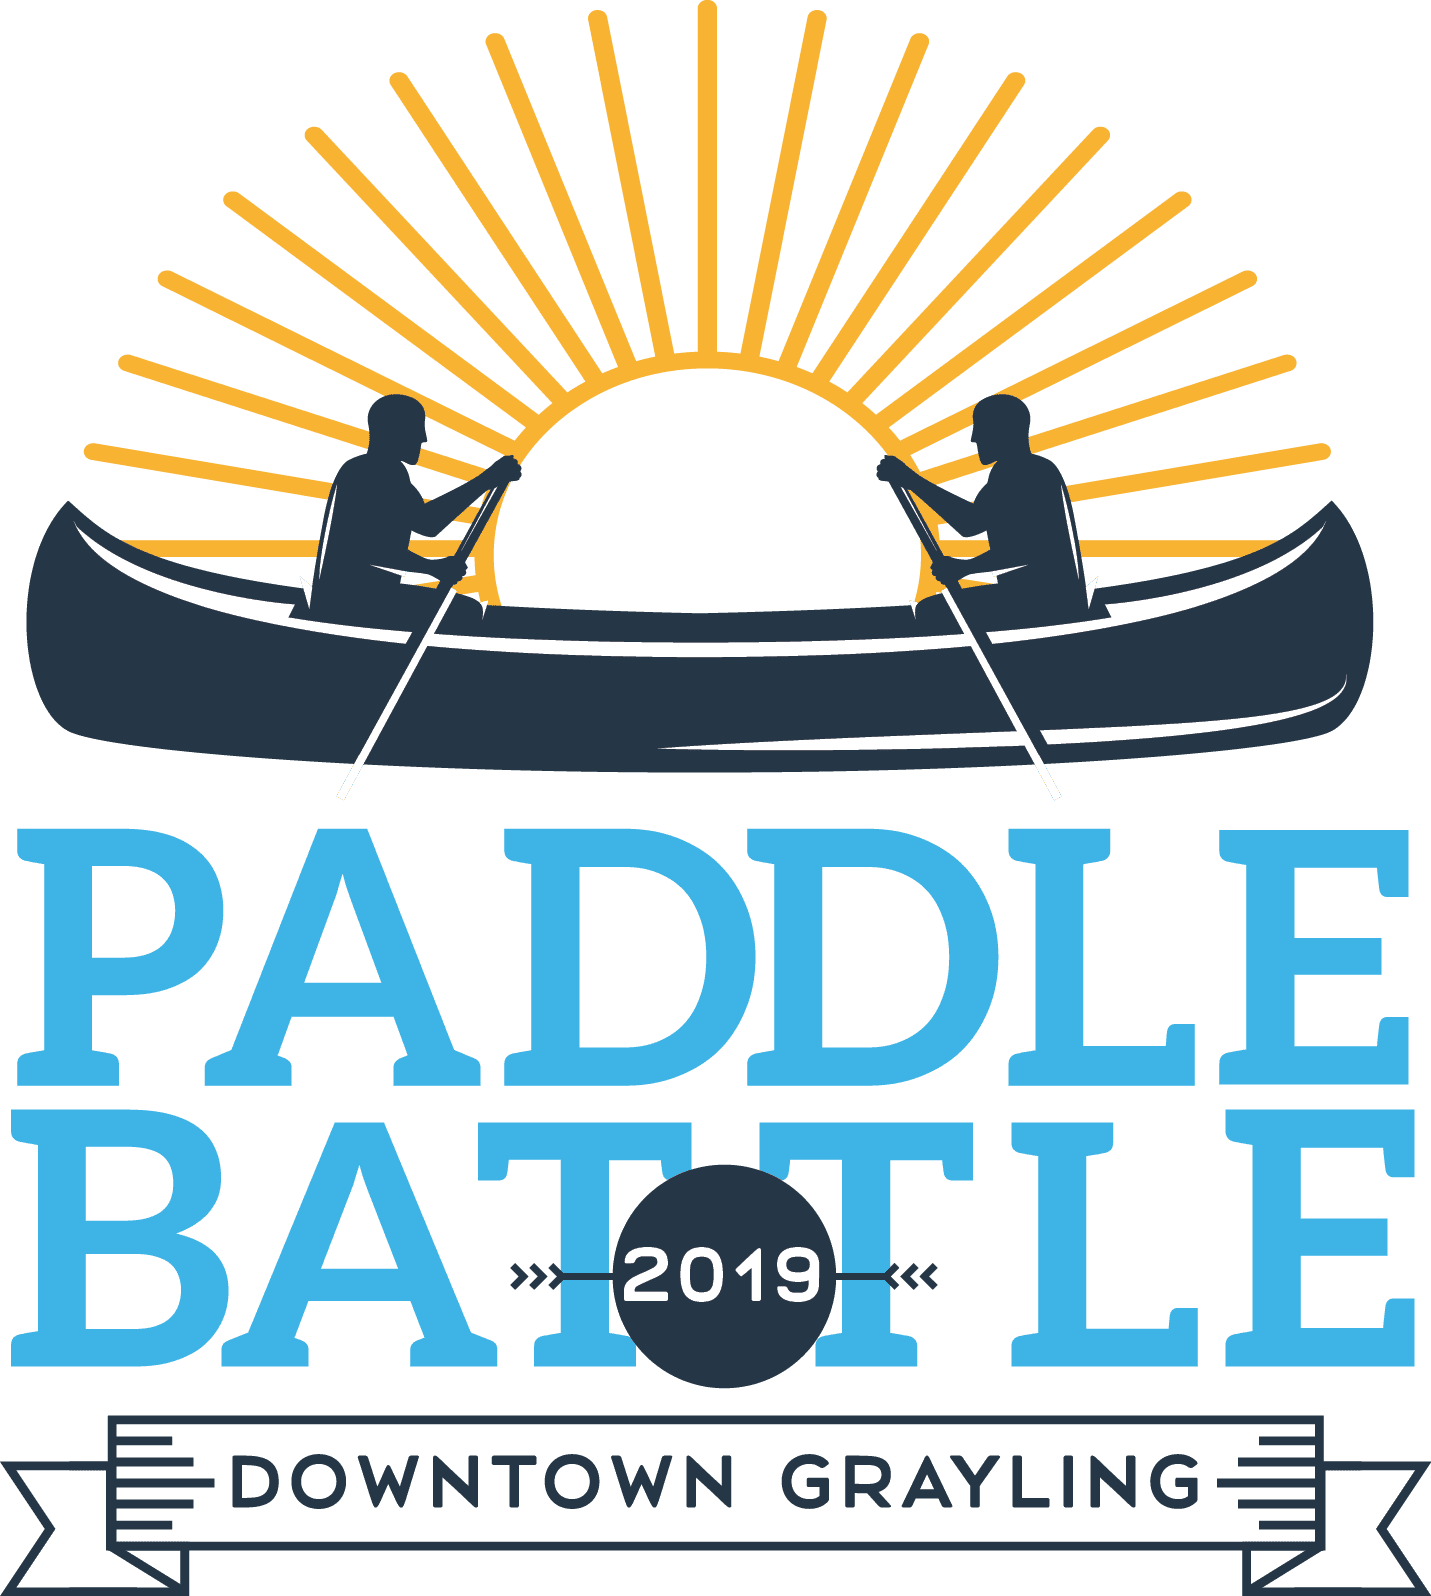 Paddle Battle 2019